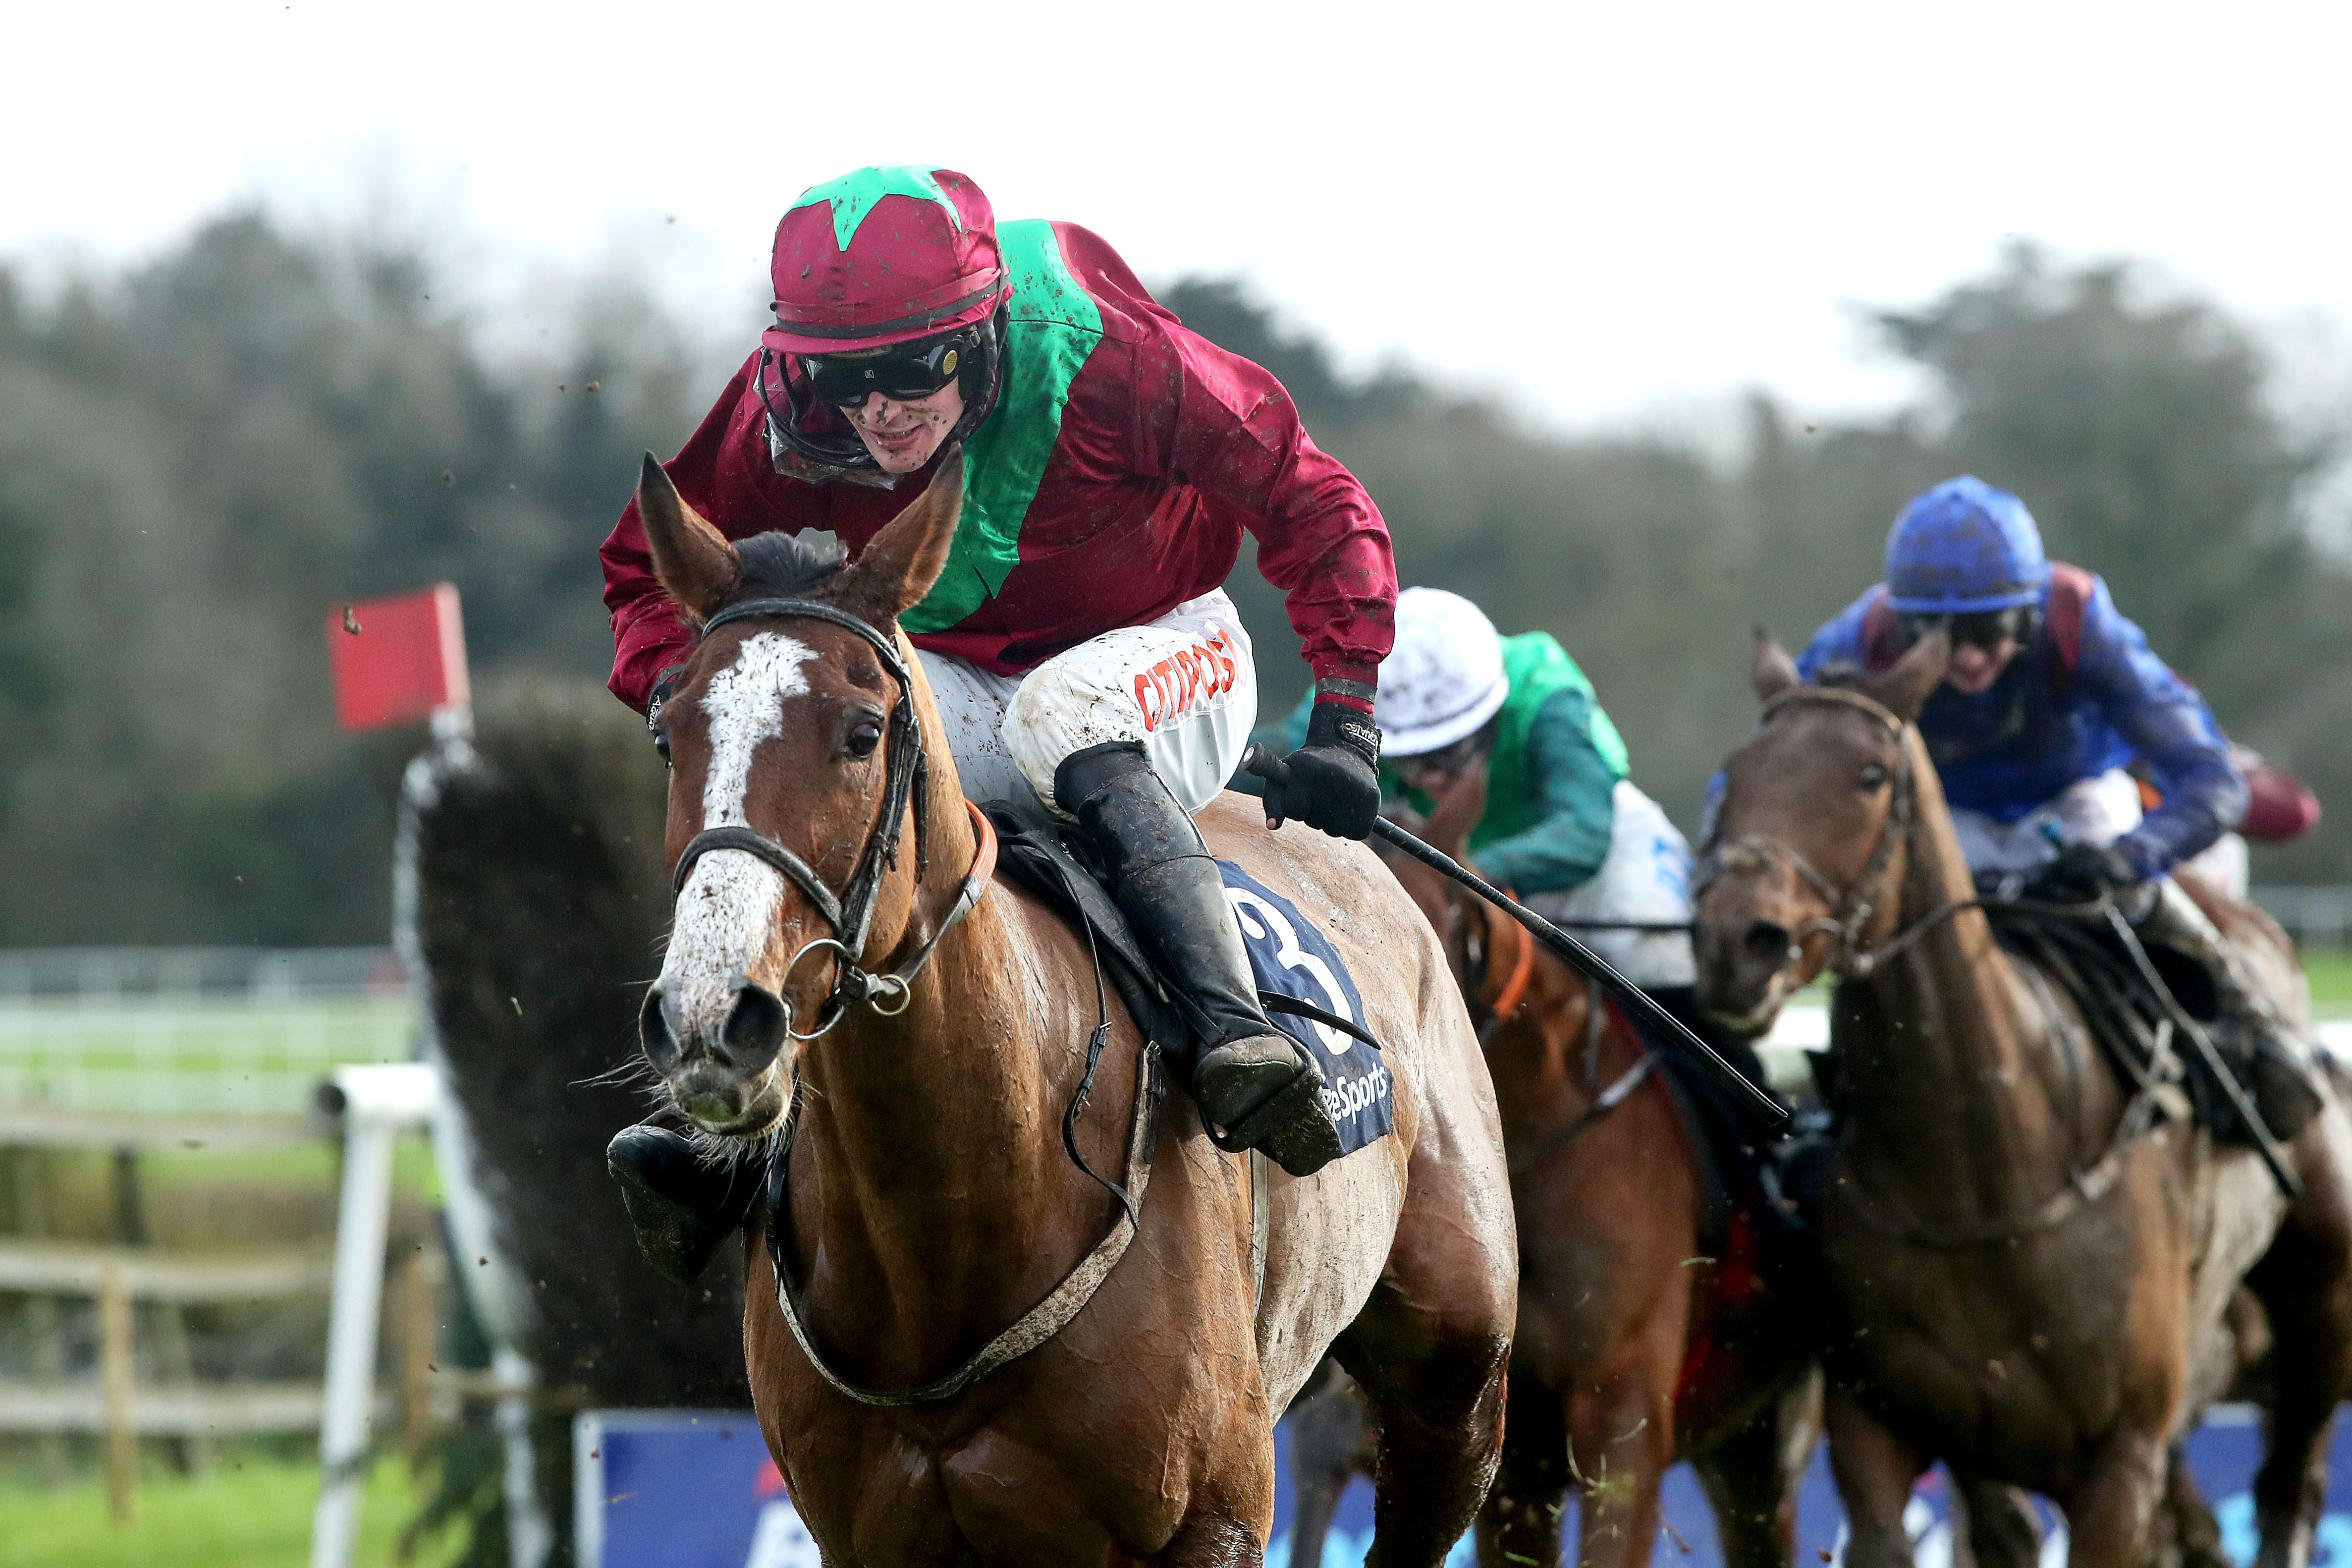 Agusta Gold (10/1) can land the Irish Grand National at Fairyhouse for Willie Mullins and Danny Mullins